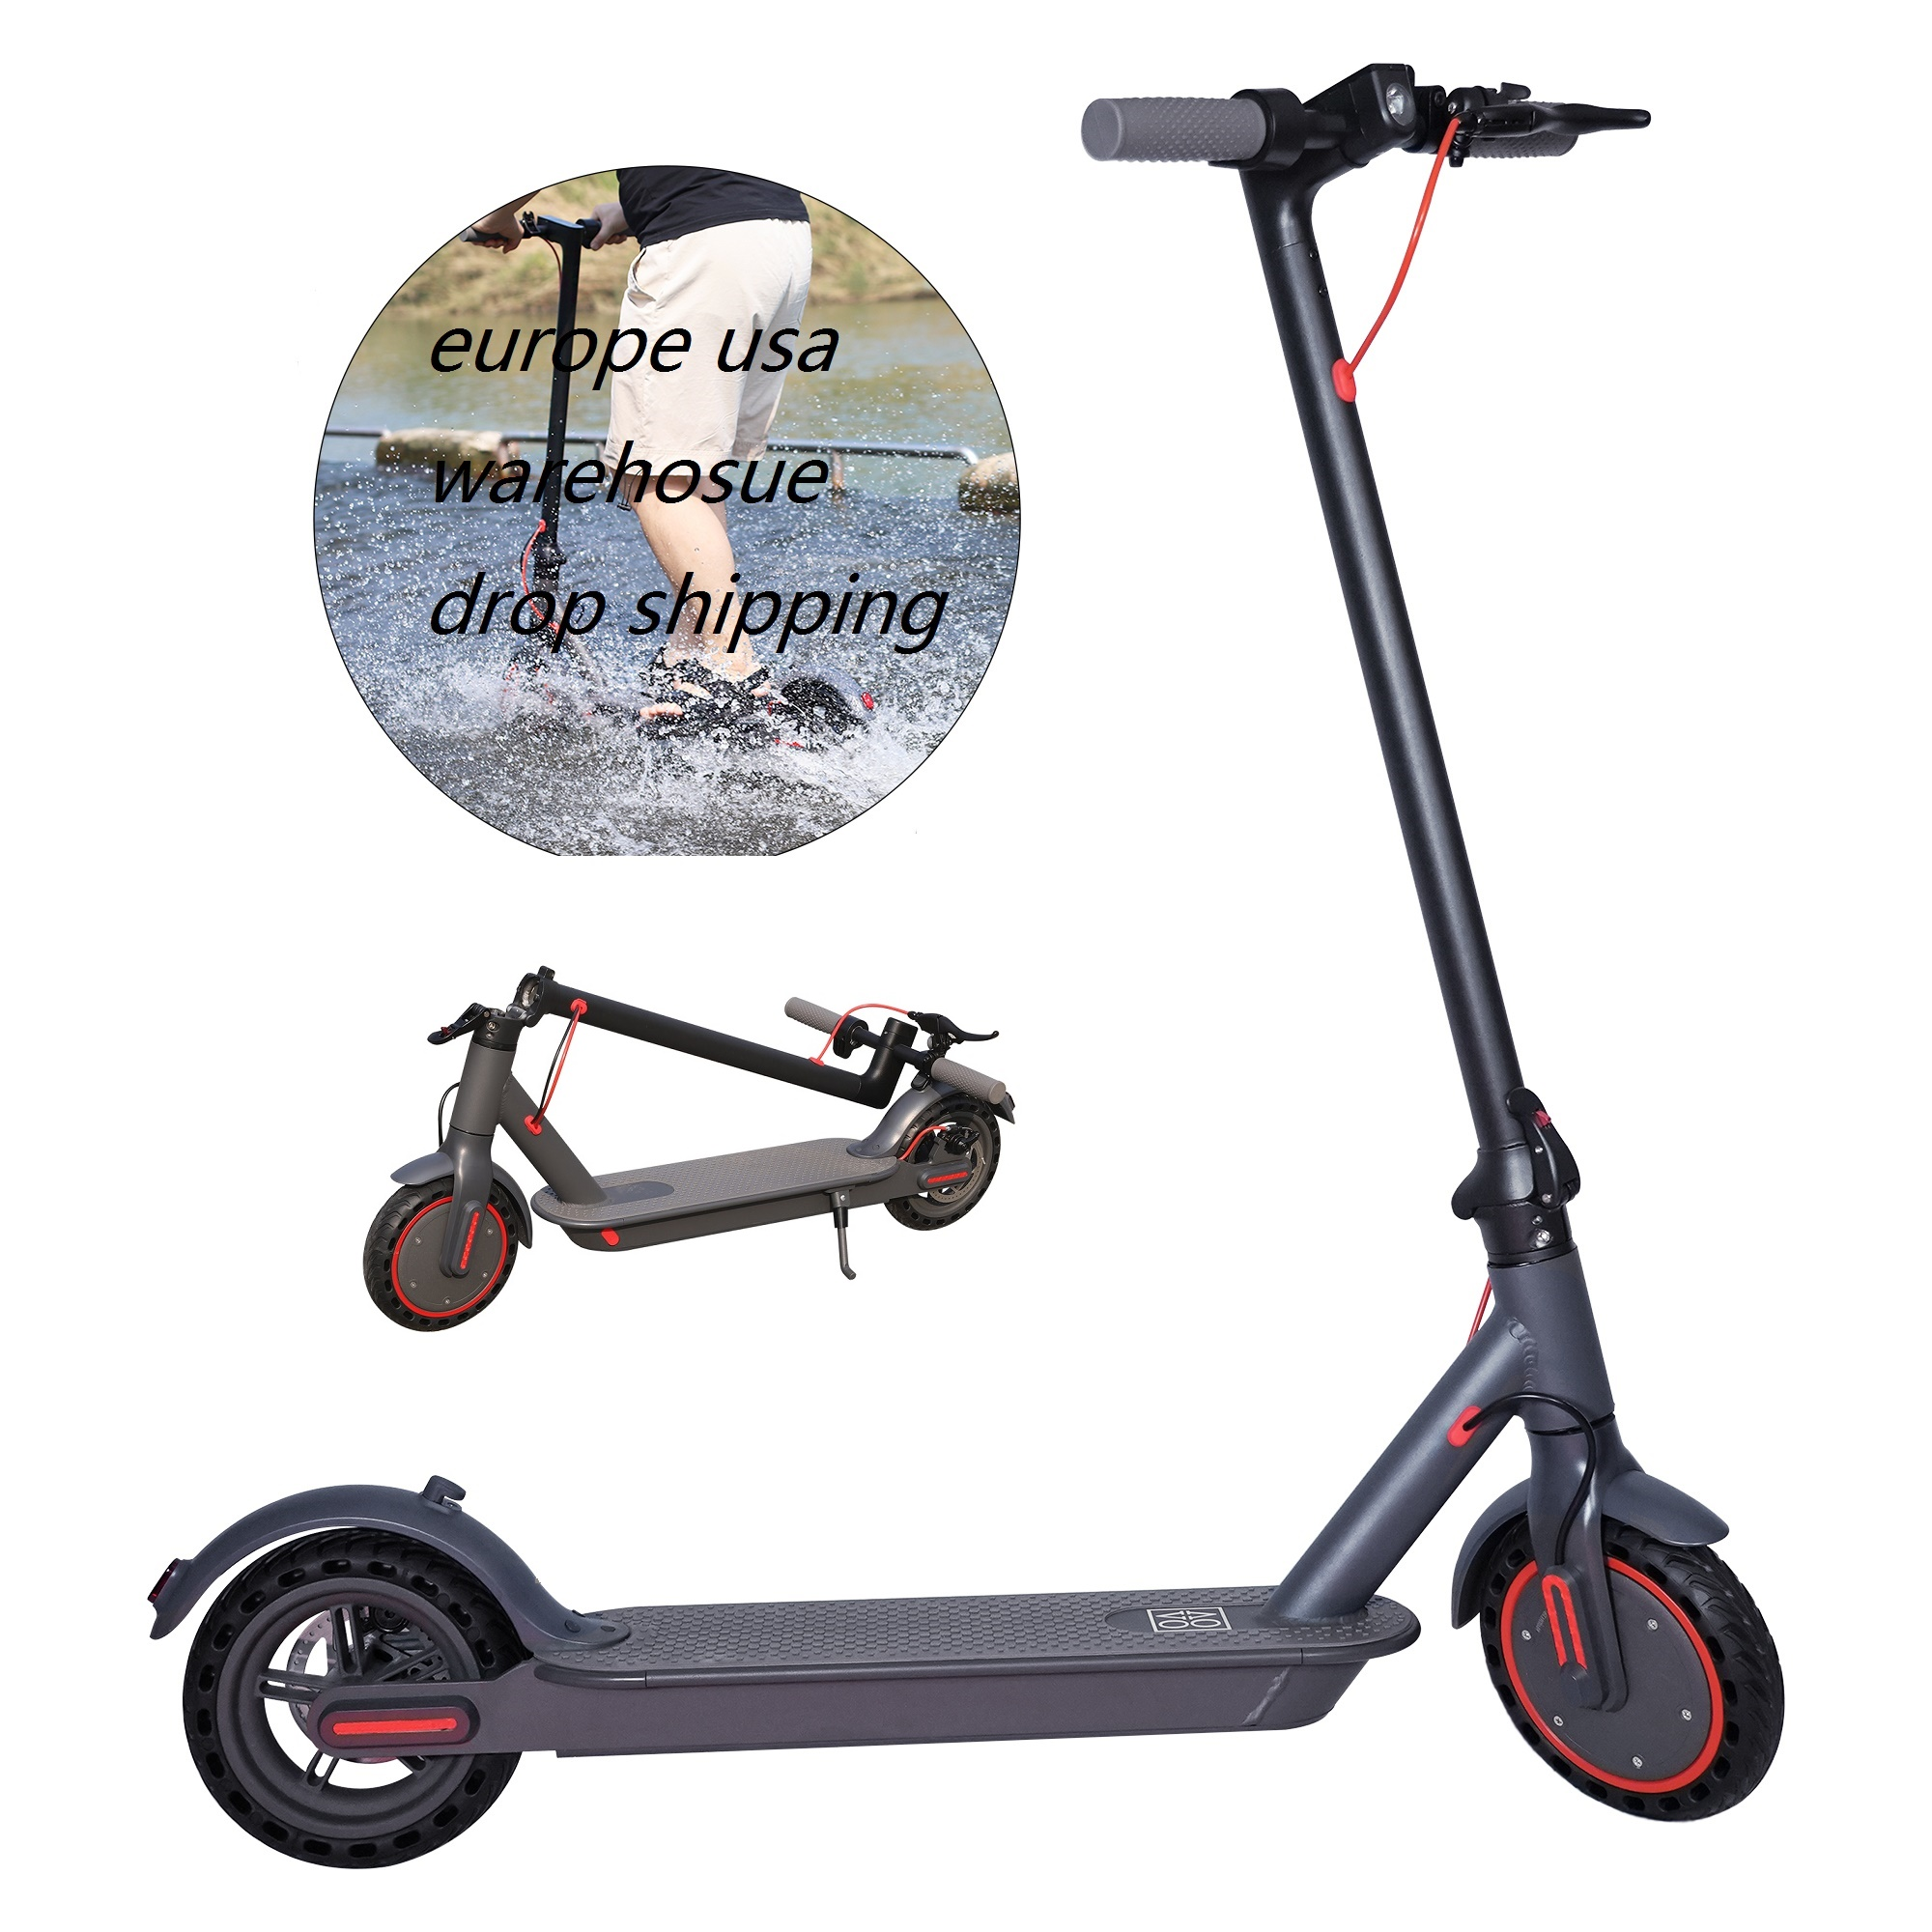 Aovopro Europe Warehouse Drop Shipping Folding Mobility 350w 365 Pro 10.5Ah Battery 2 Wheels Adult Electric Scooter